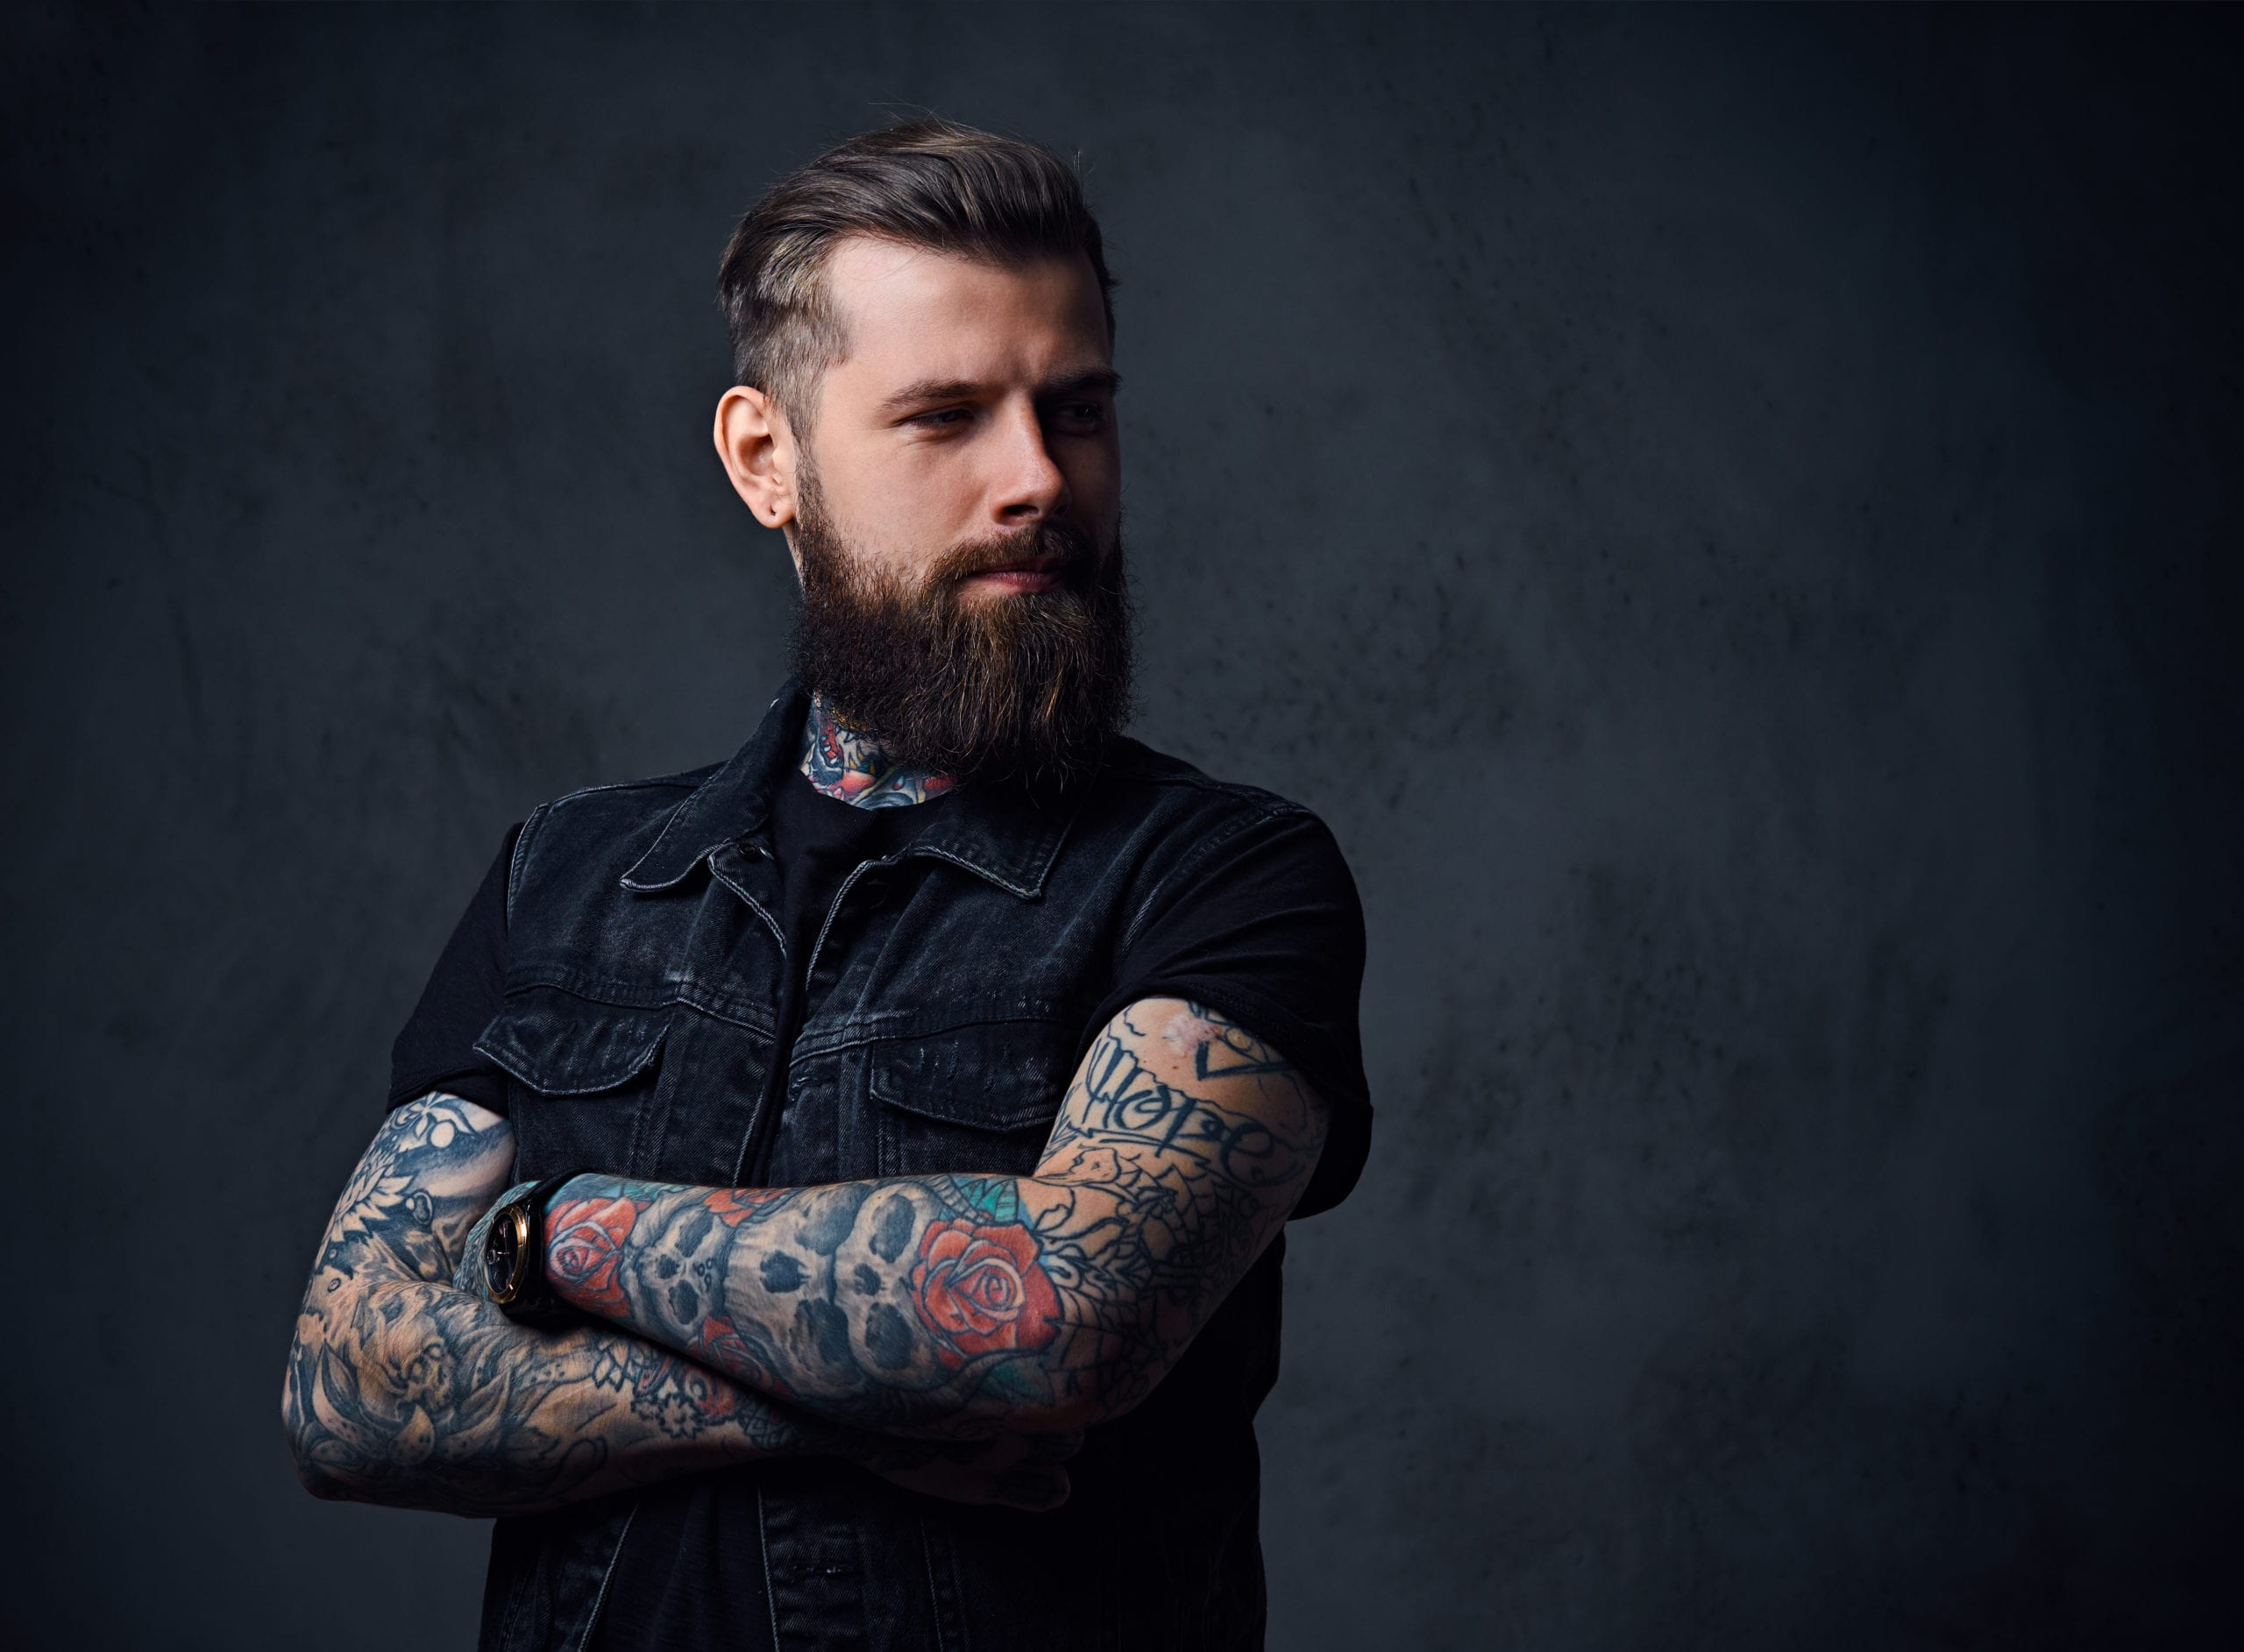 tattooed man with arms crossed